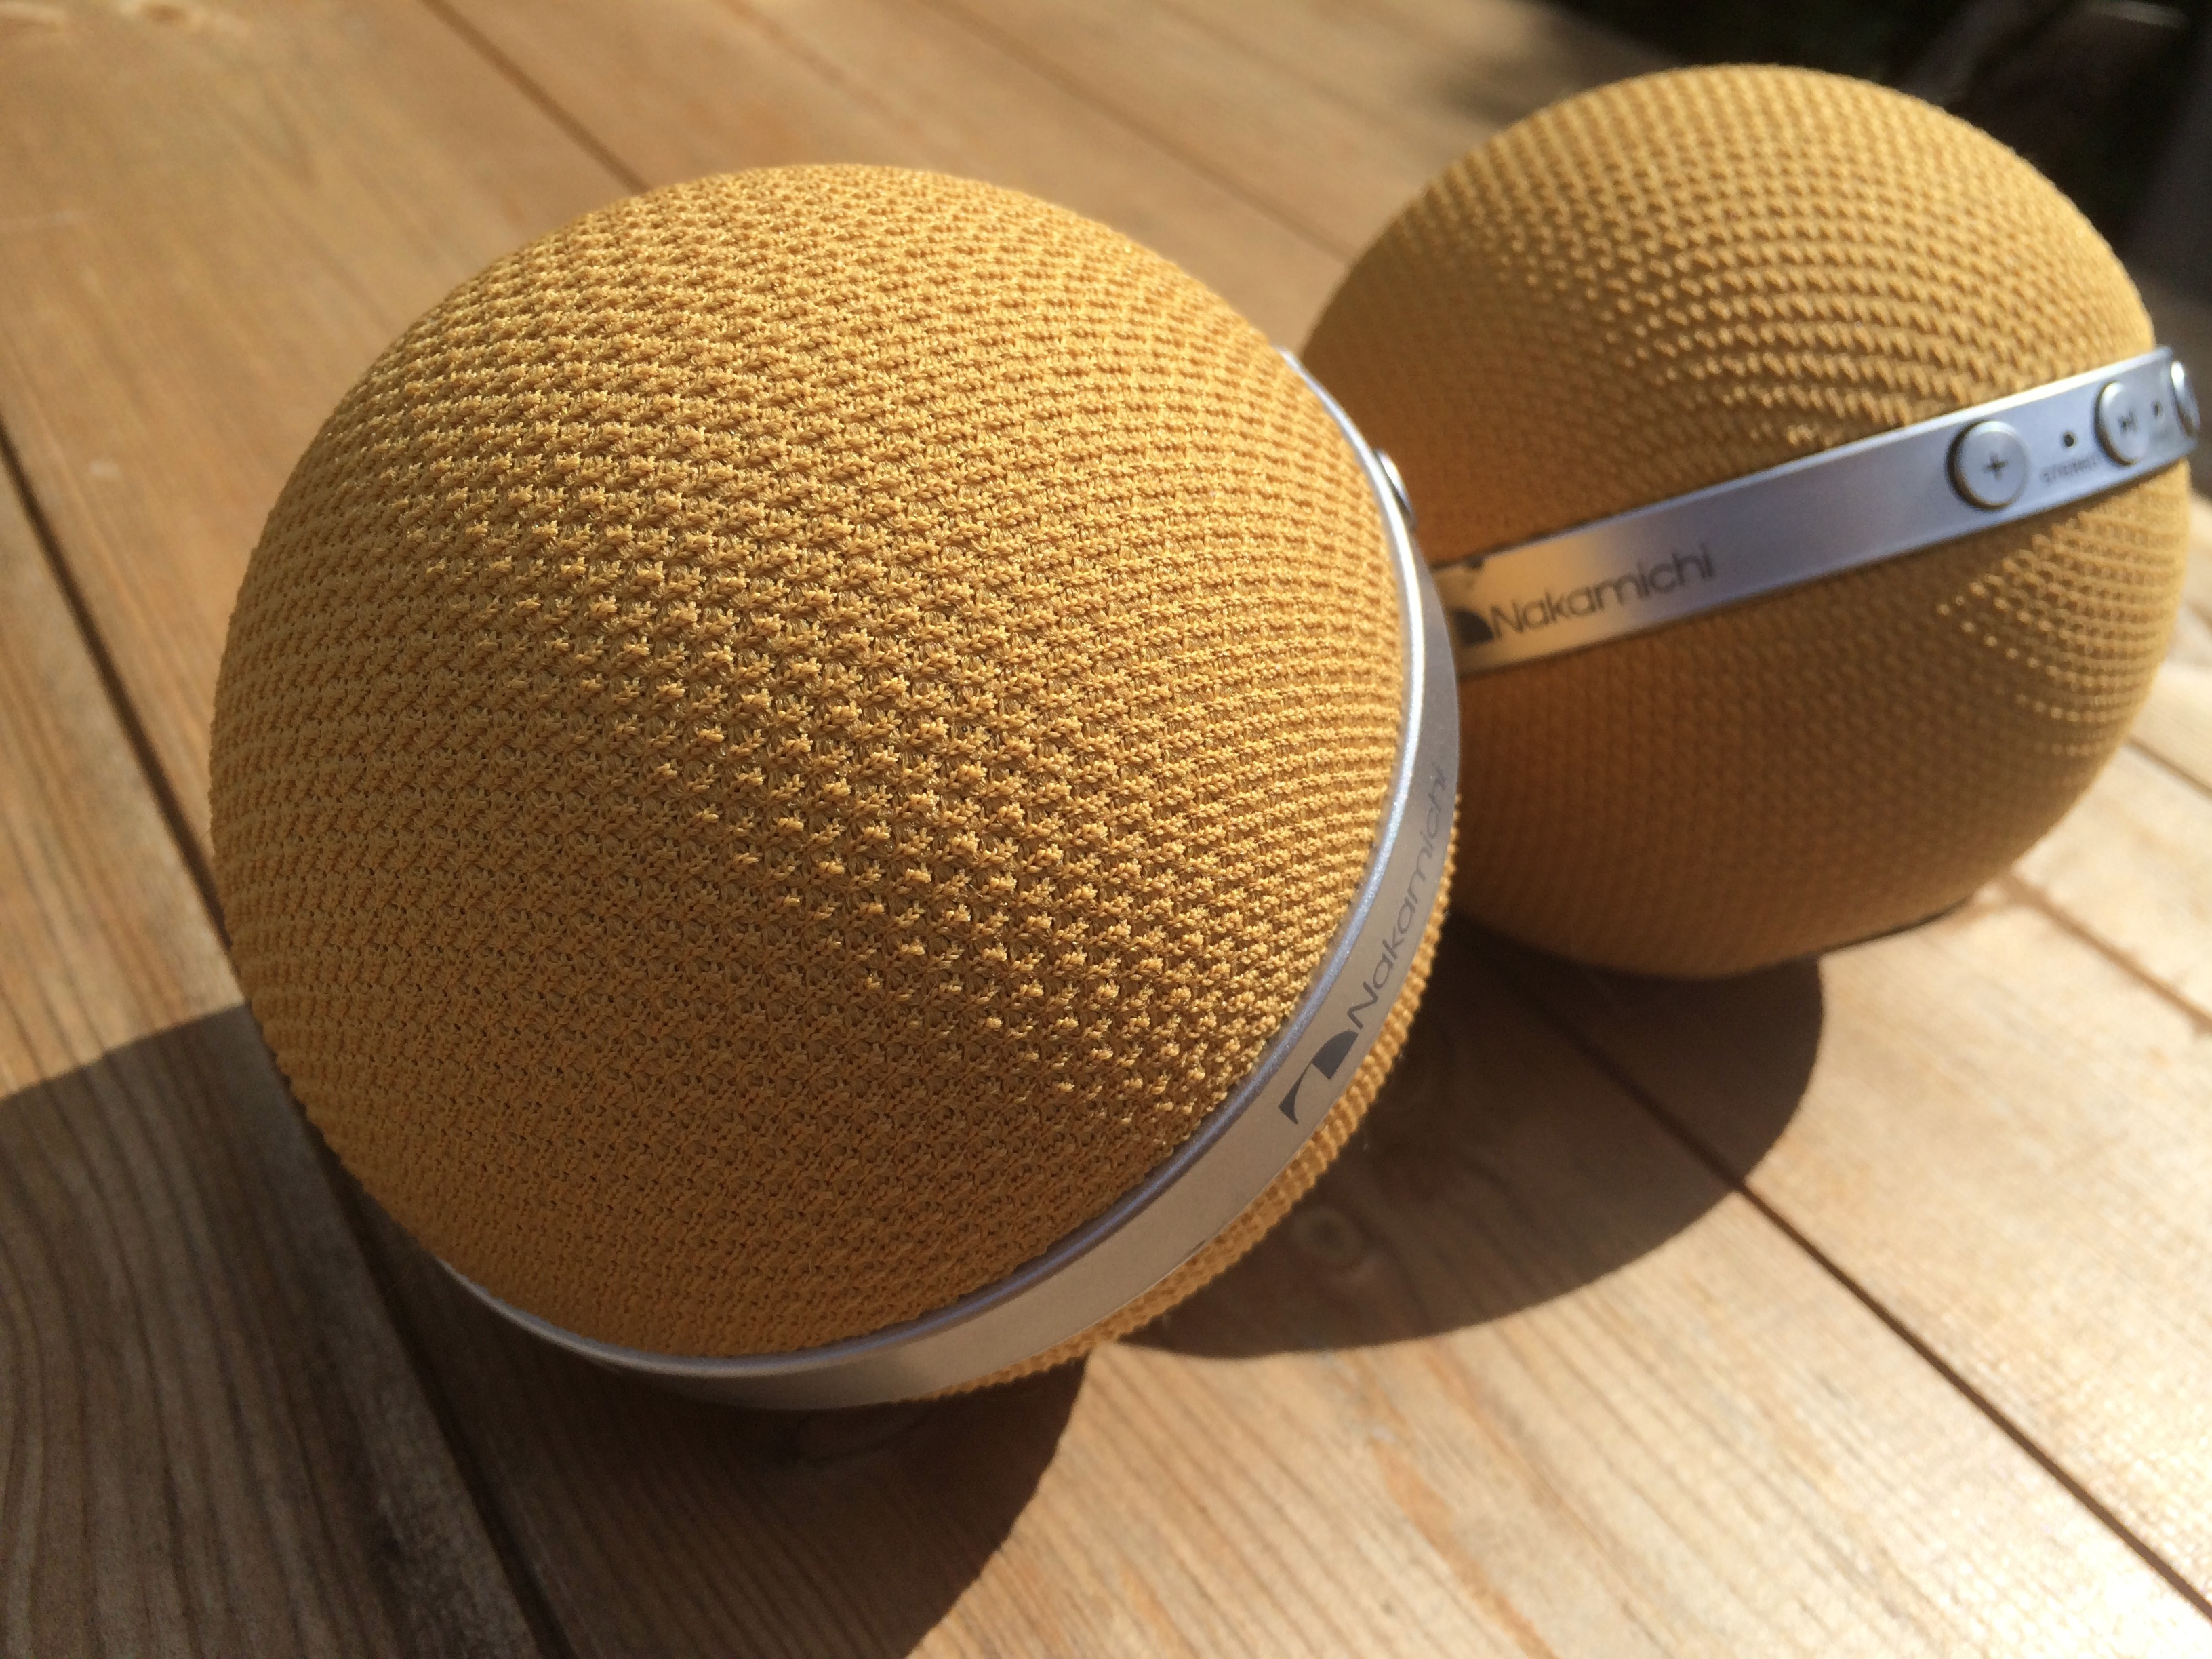 Nakamichi NBS10 Bluetooth Speaker Review